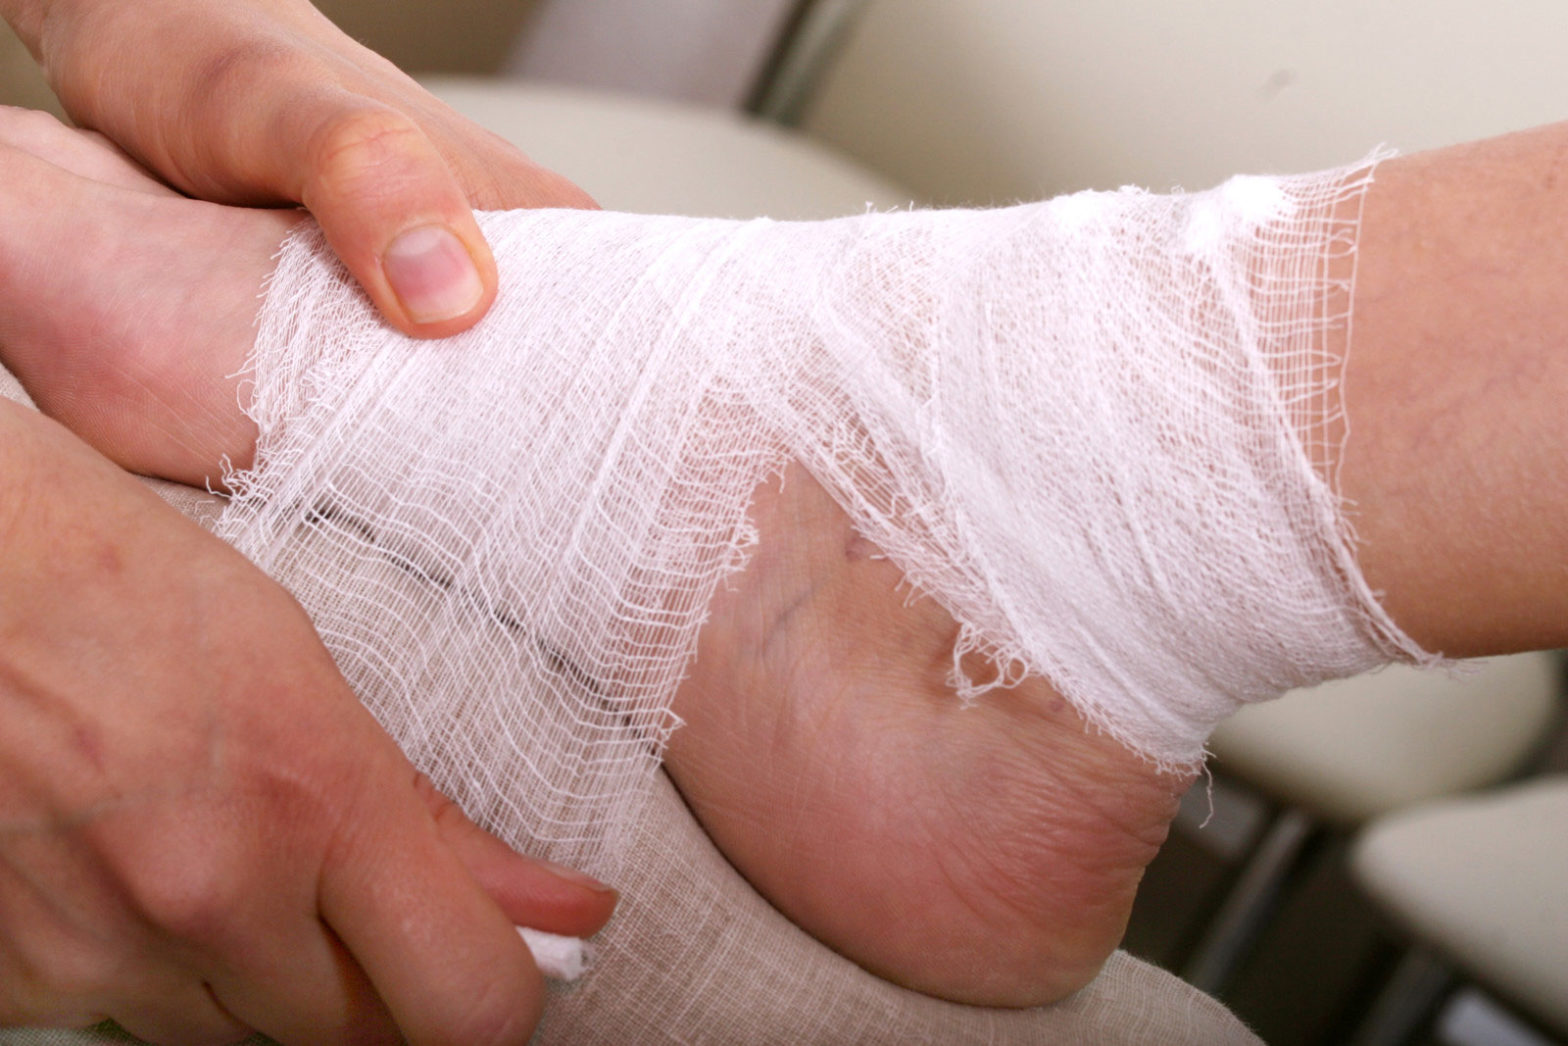 Treatment Of A Non Healing Diabetic Foot Ulcer